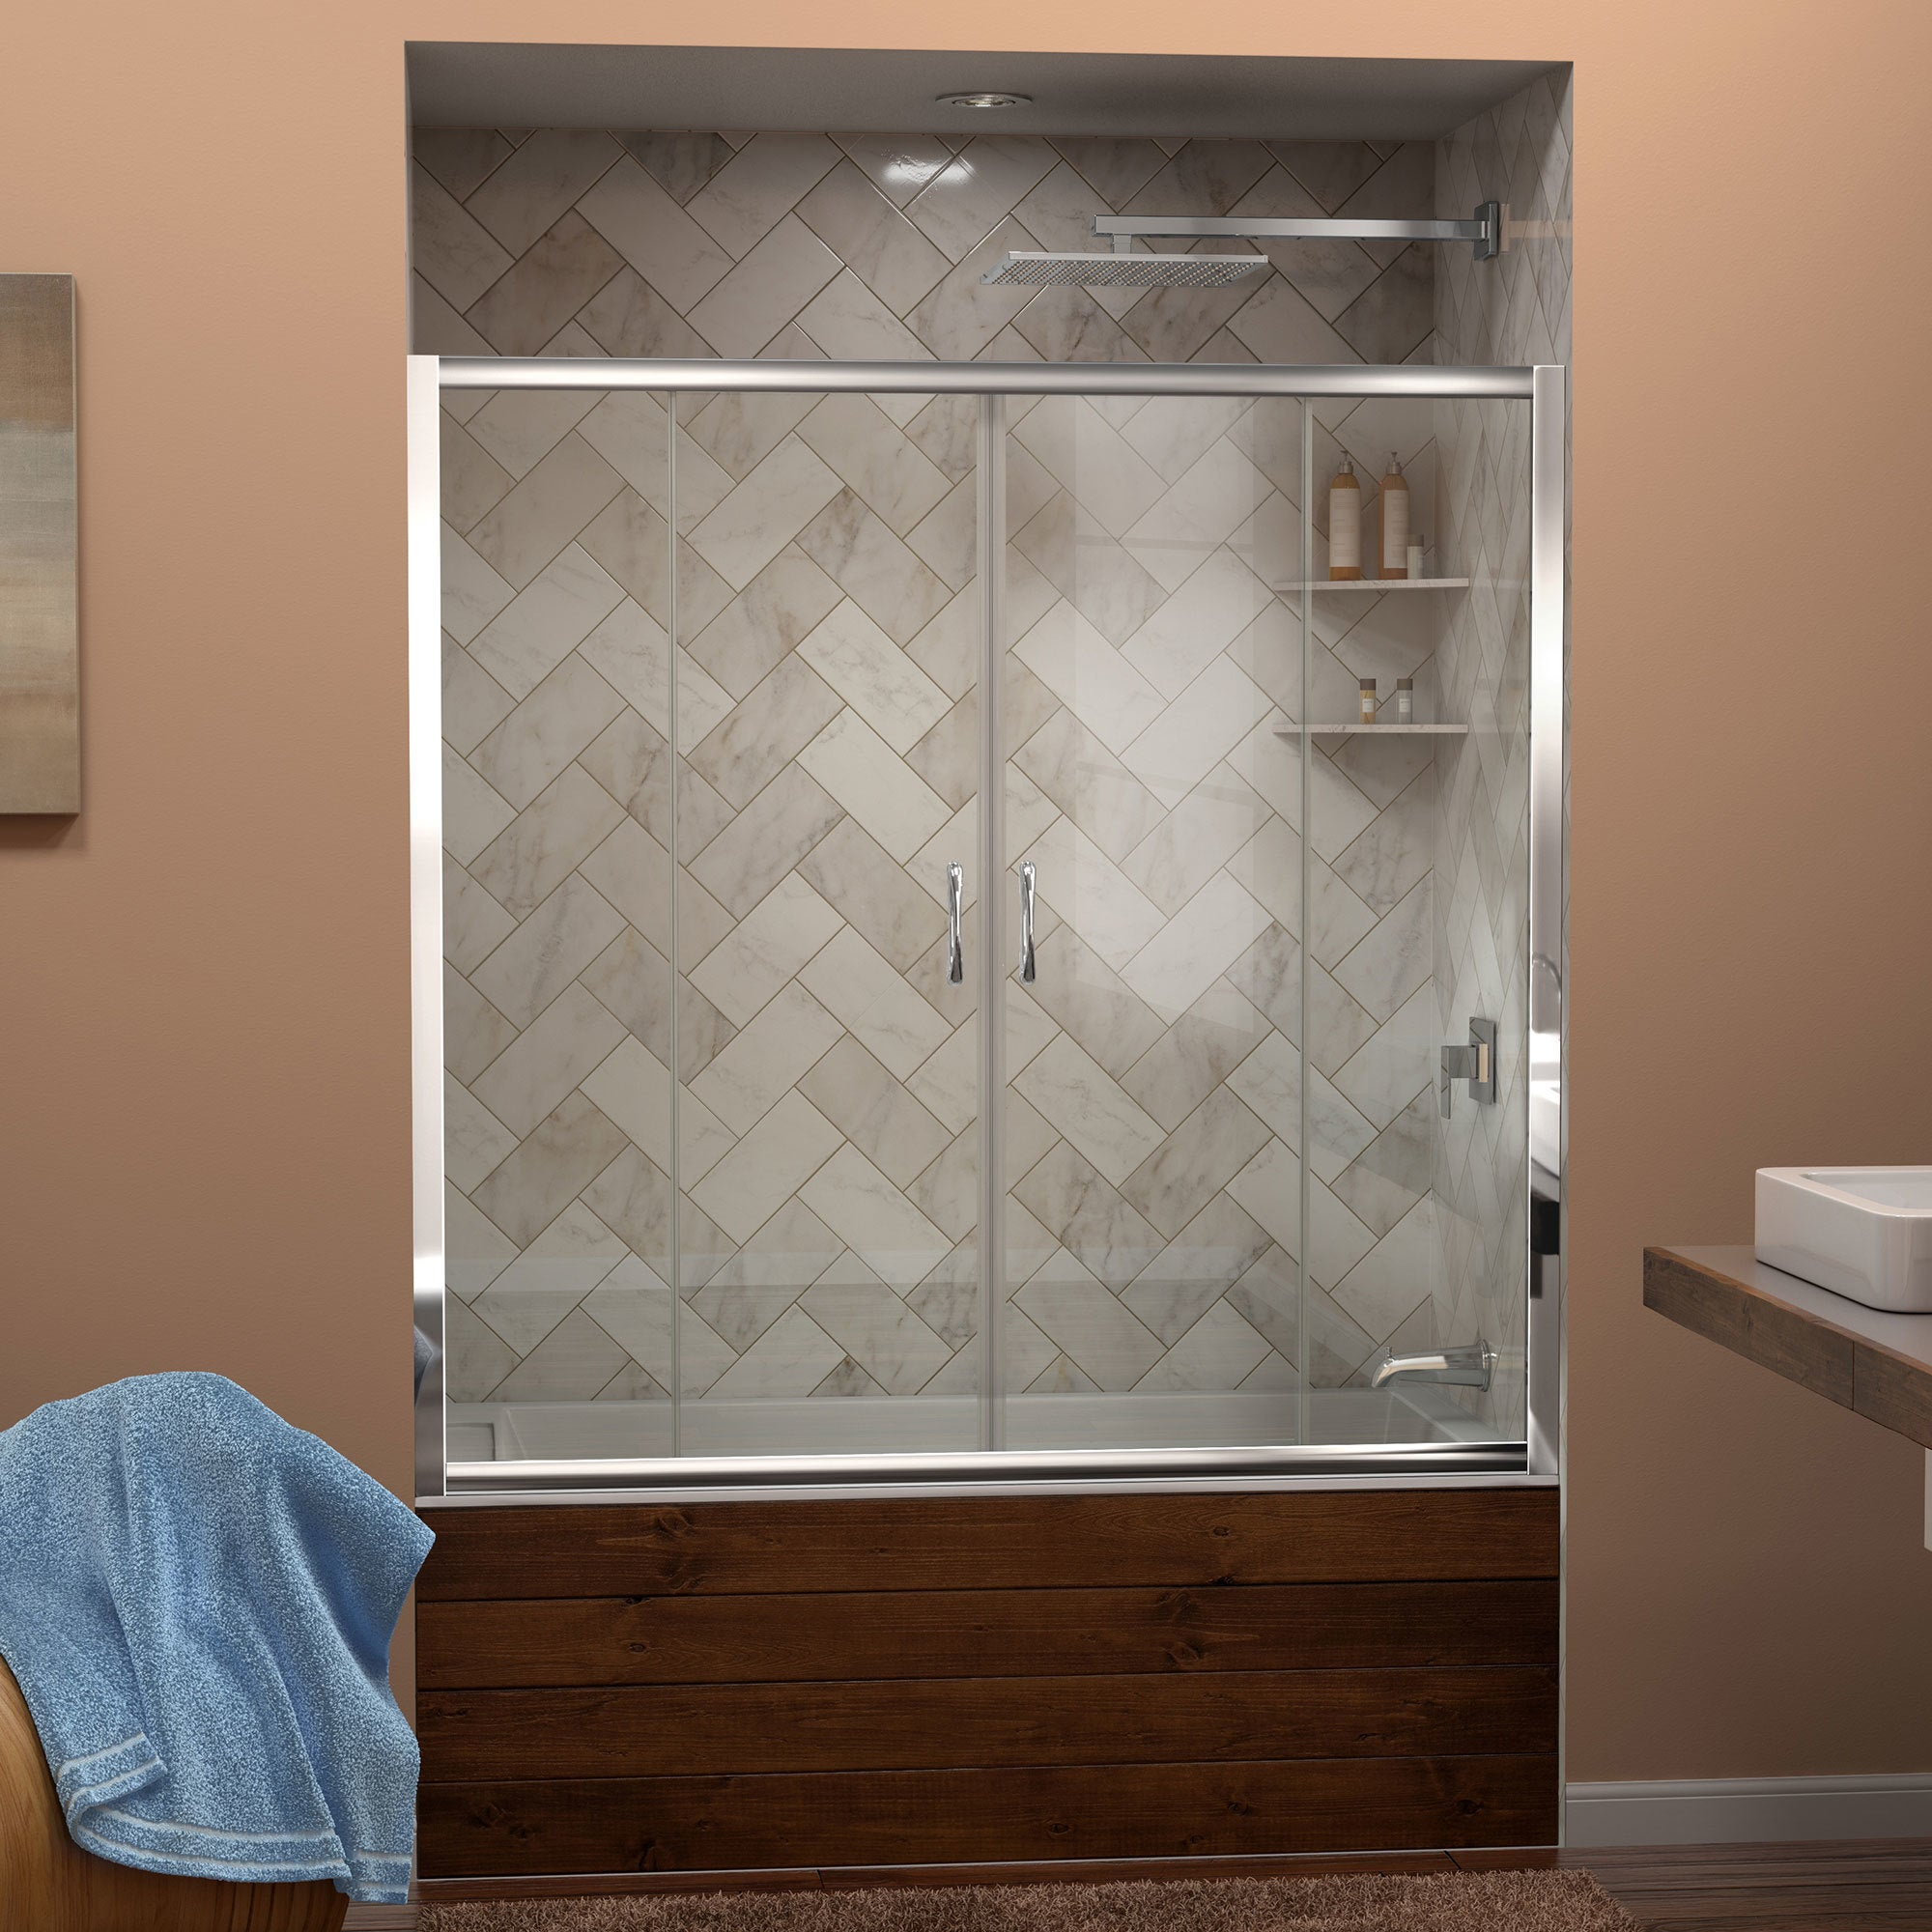 DreamLine Visions 56 to 60 in. Frameless Sliding Tub Door - Free ...